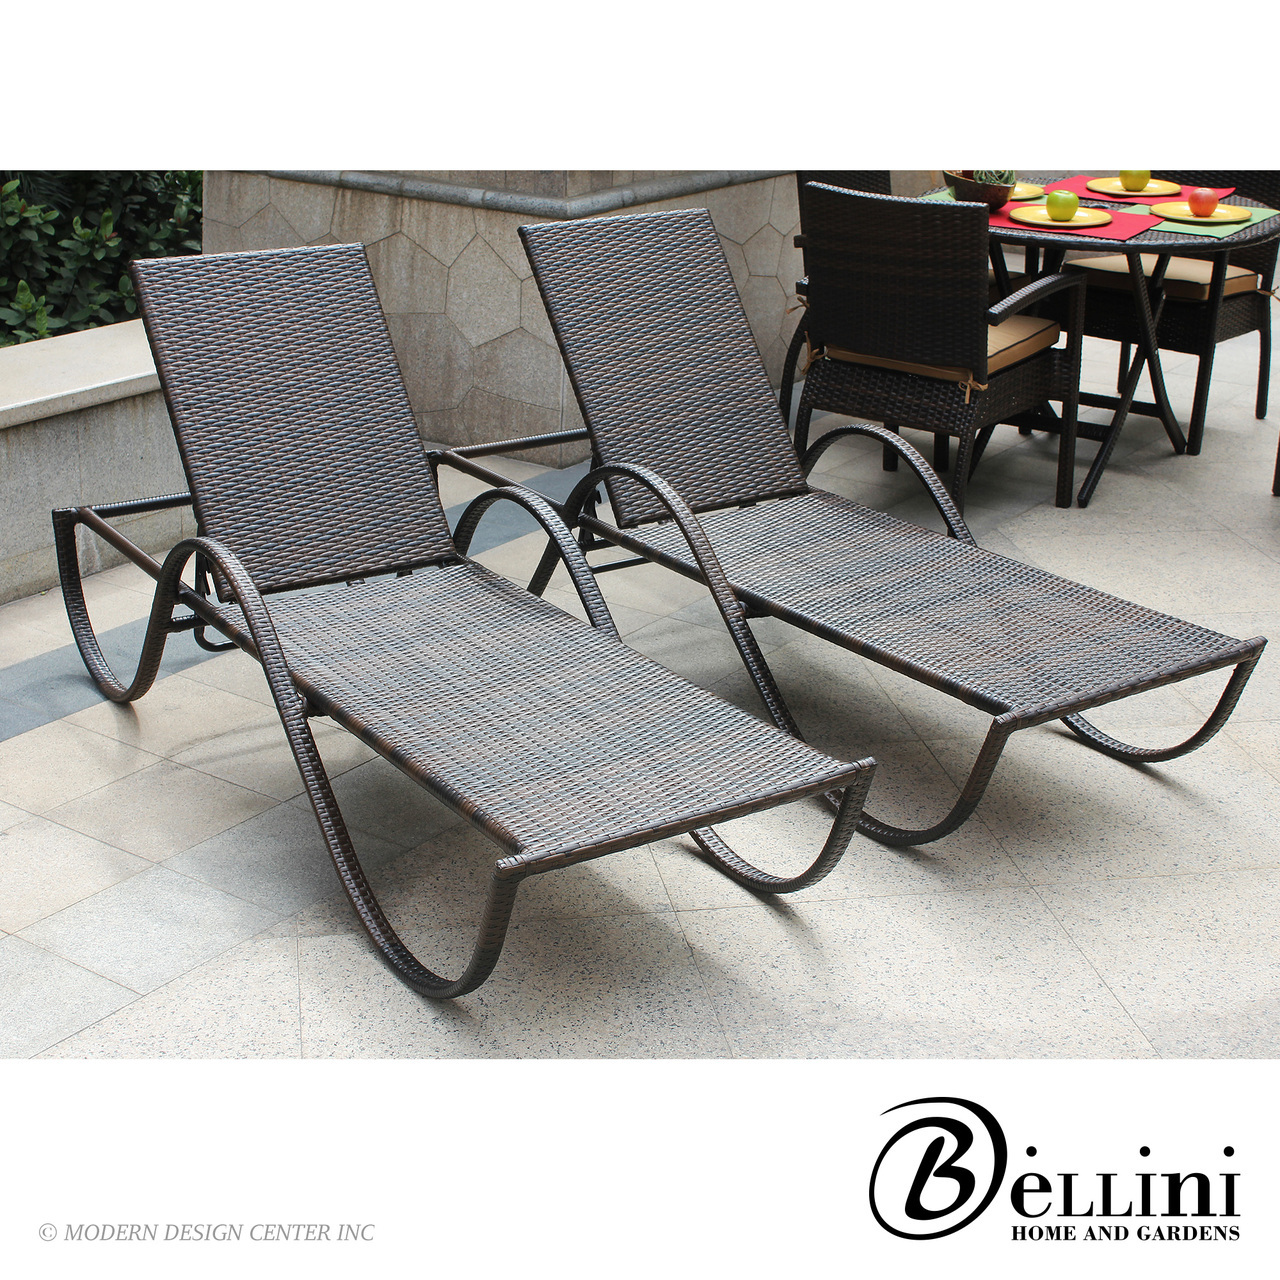 Azul Chaise Lounger W64702 Set Of 2 Bellini